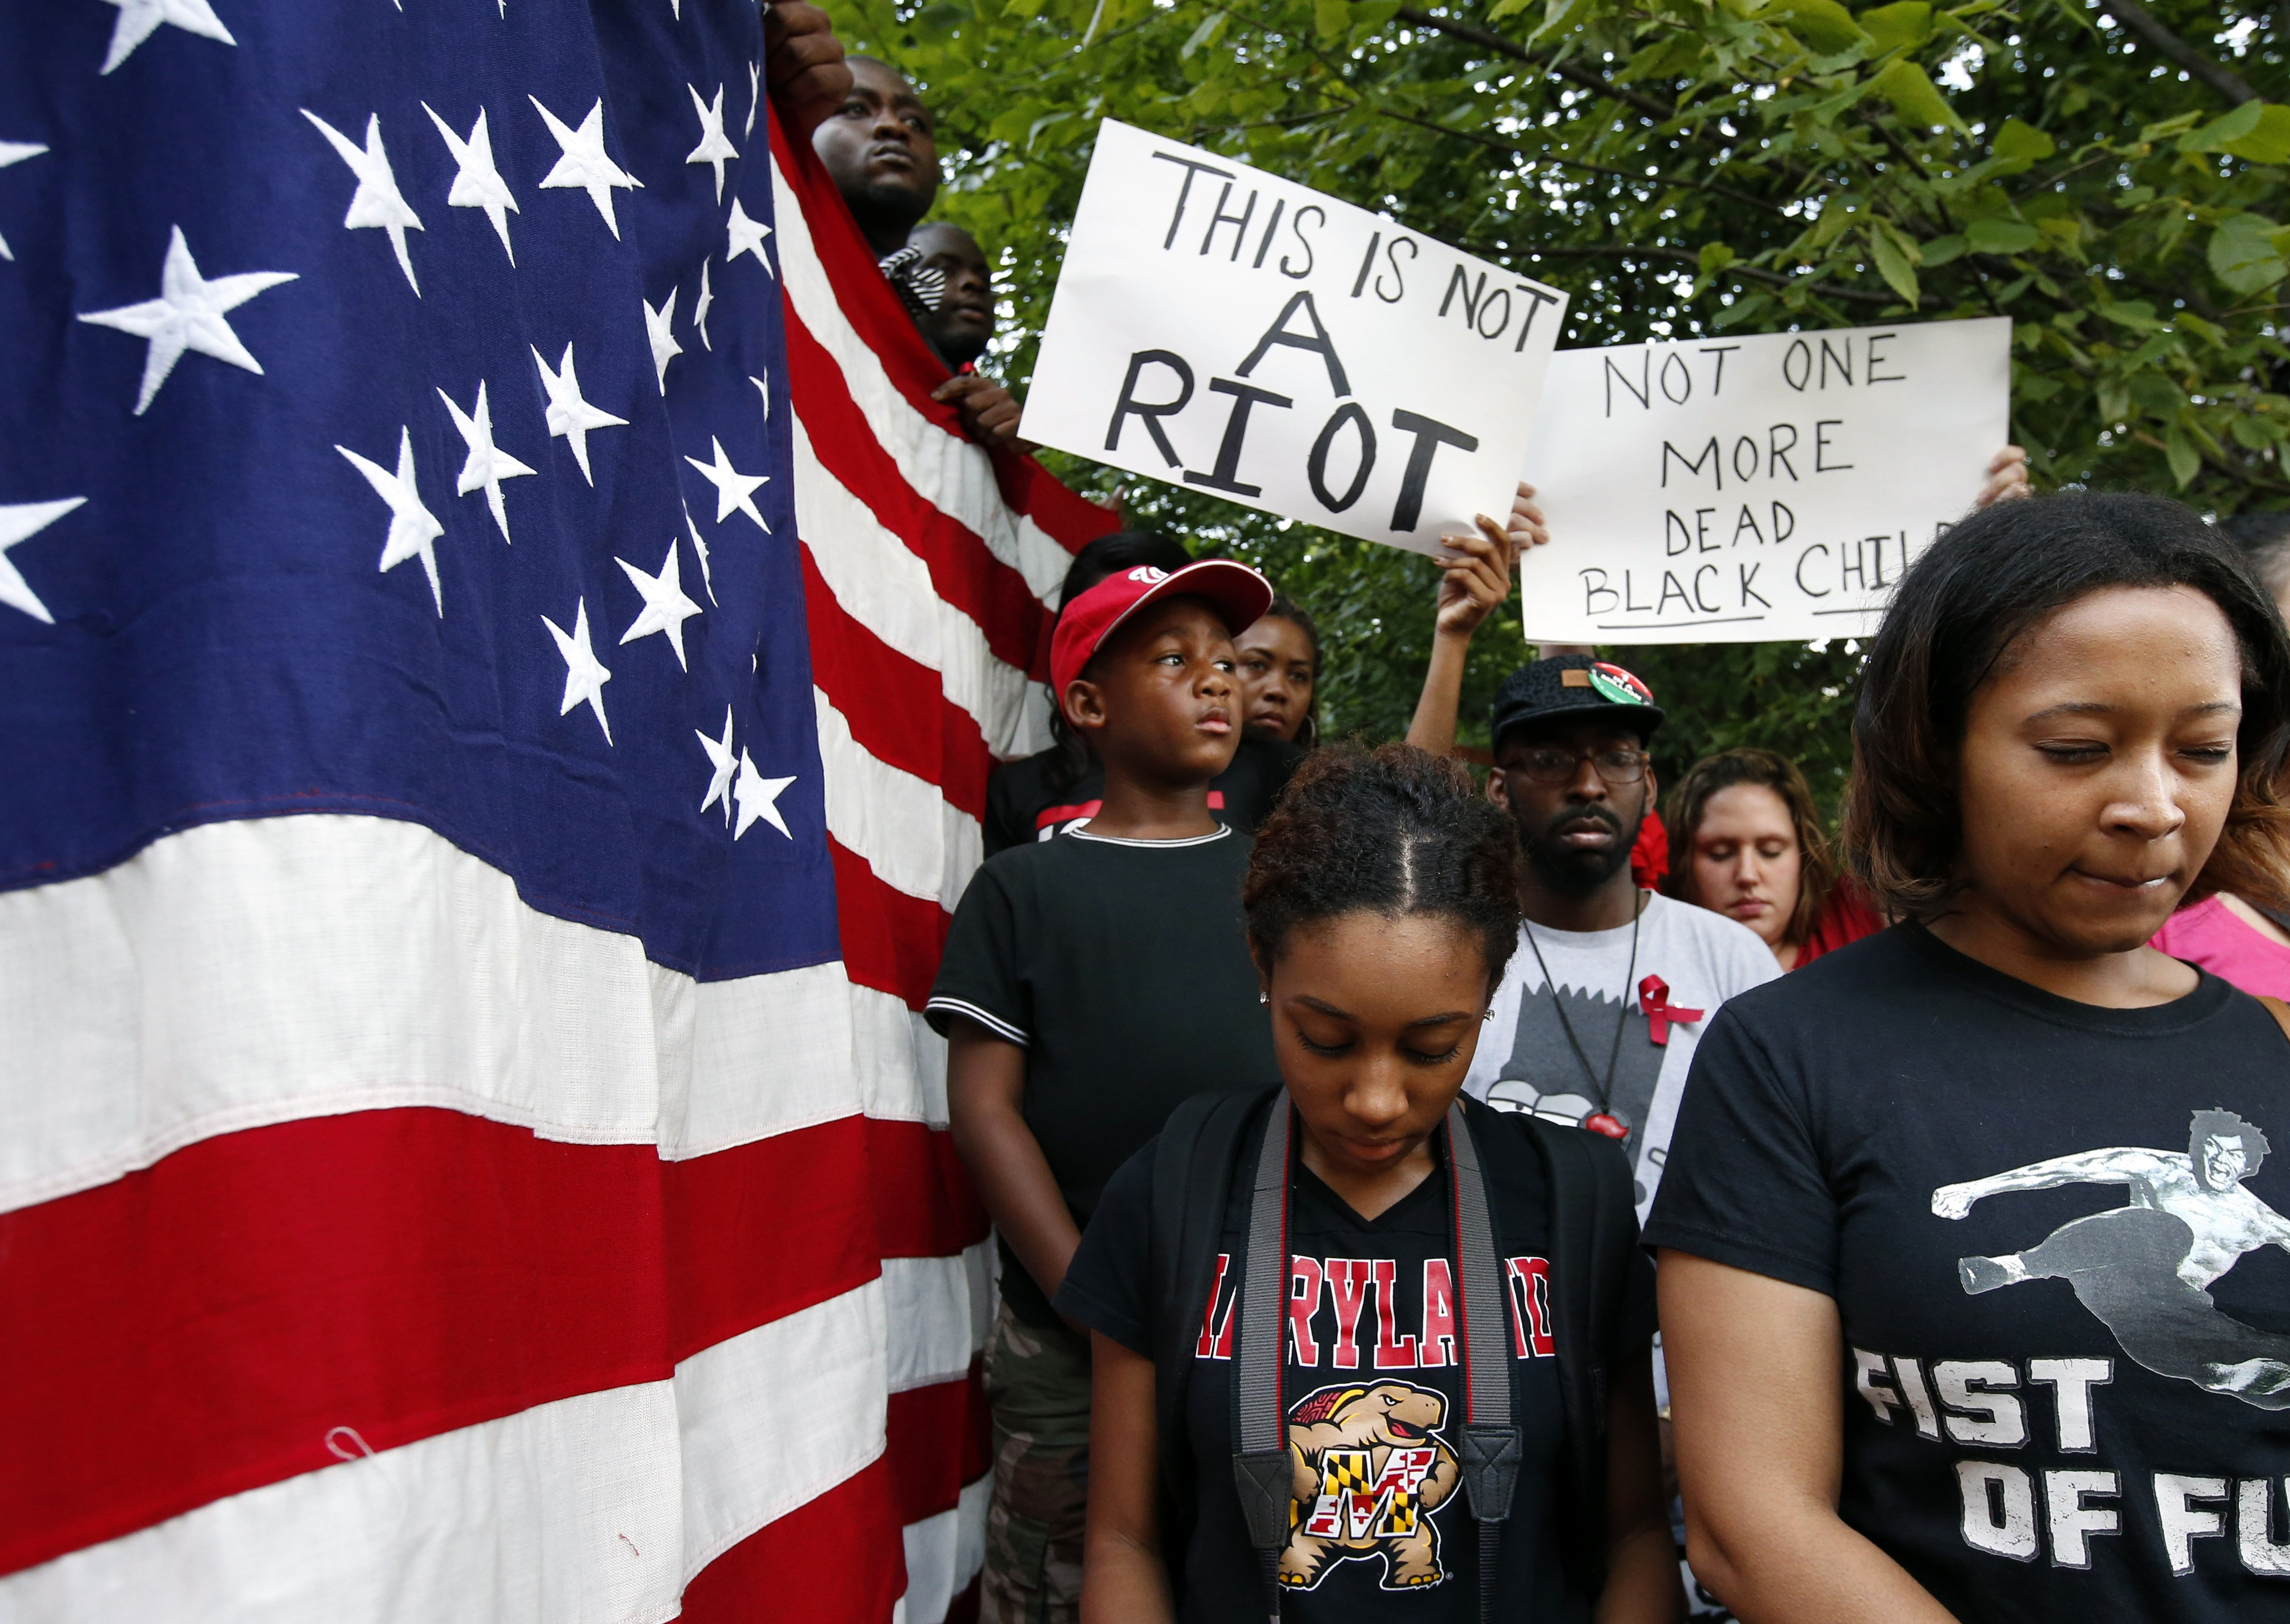 Jordan Johnson, left, 8, from Washington, Camille Chrysostom of Bowie, Md., and Jaimee Swift of Philadelphia, observe a moment of silence at Meridian Hill Park, also known as Malcom X Park, Thursday, Aug. 14, 2014 in Washington, to protest the fatal shooting of Michael Brown by police in Ferguson, Mo.